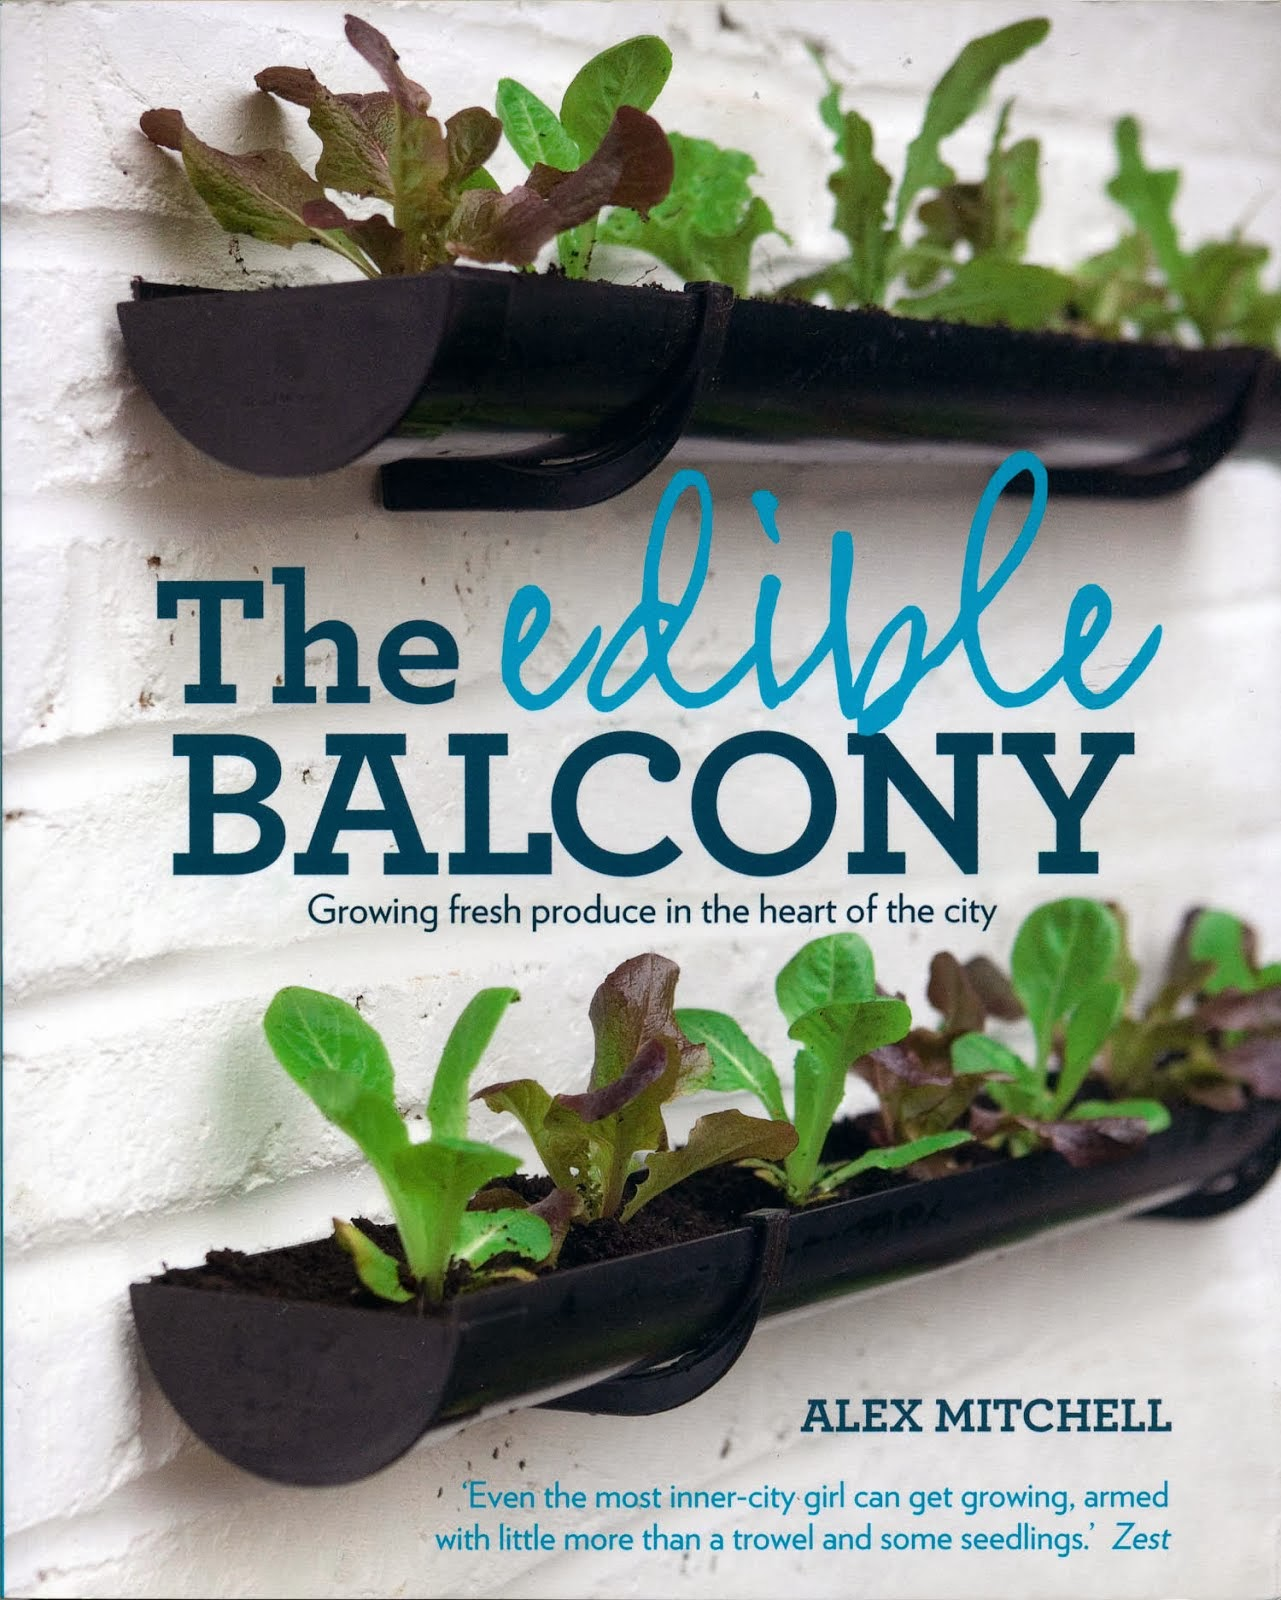 Loving this book for the new gardening season!